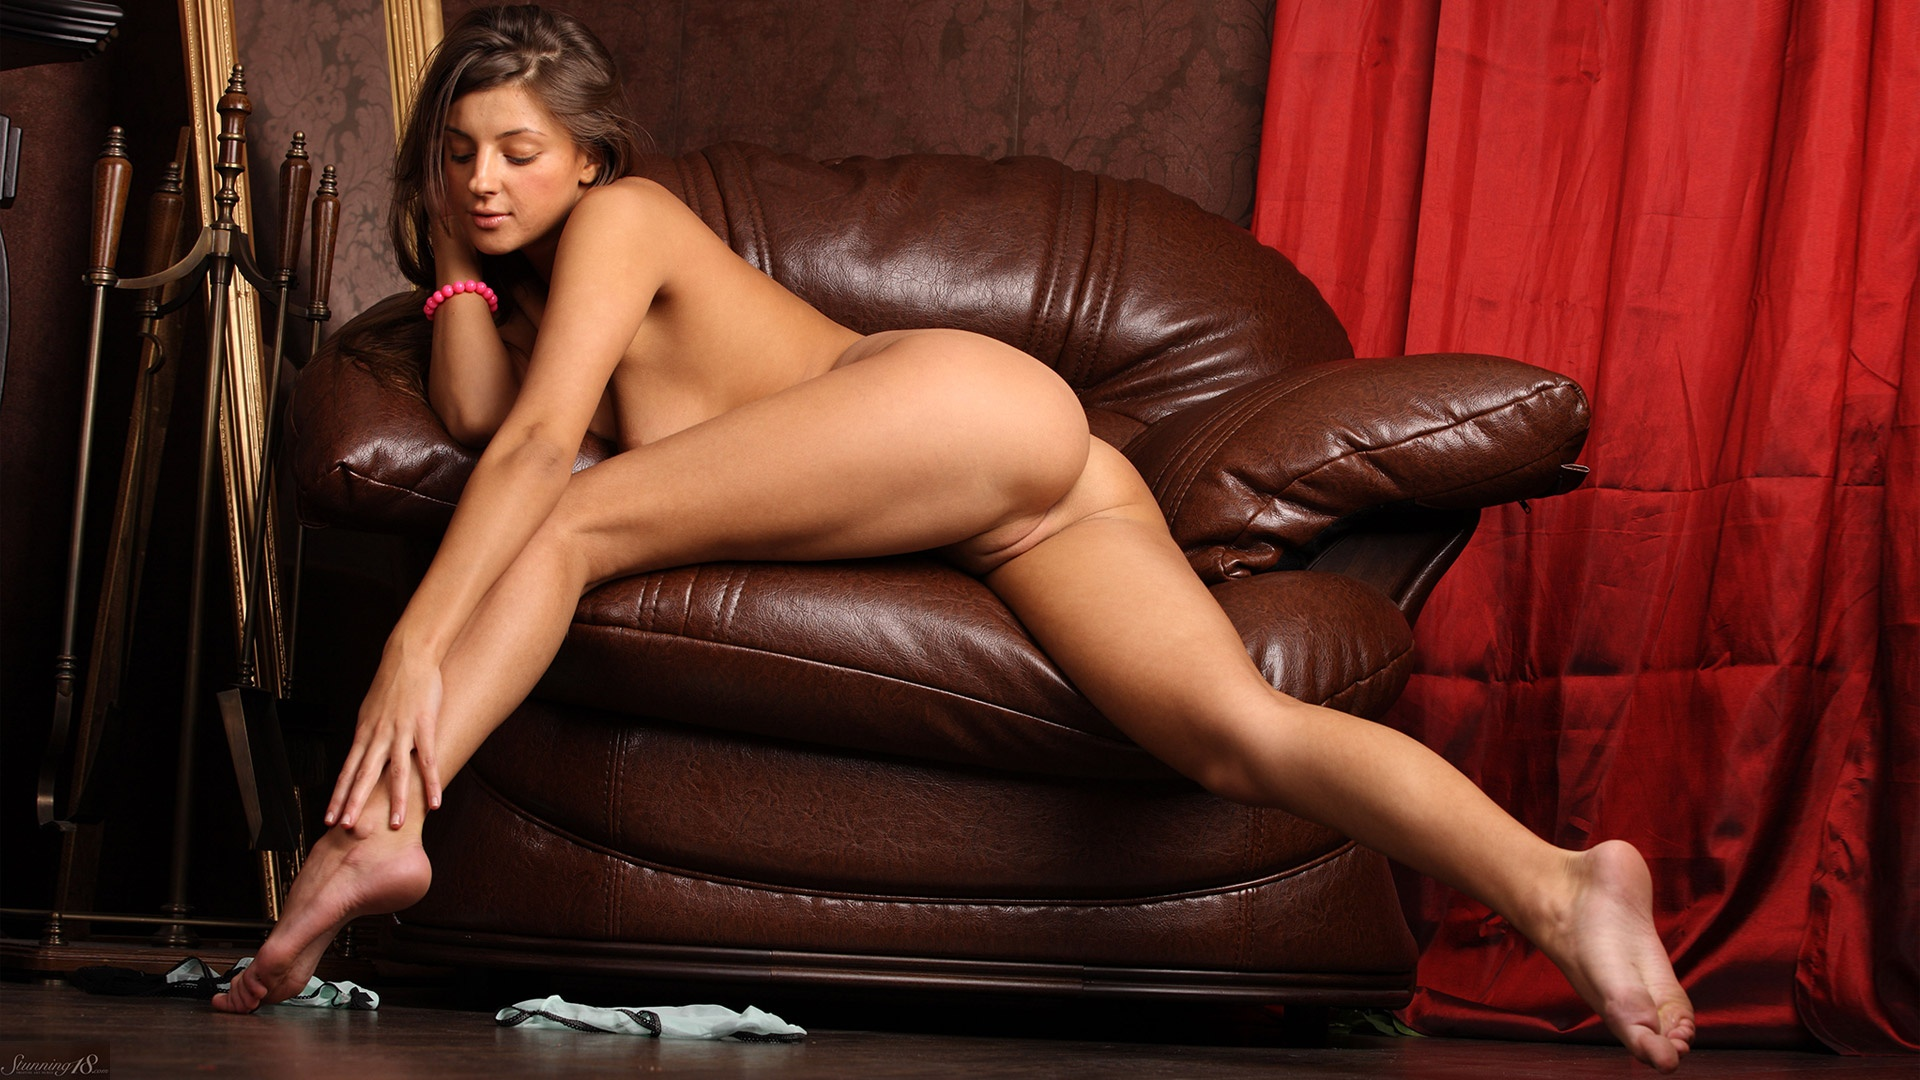 Curious topic naked pussy leather chair not meant